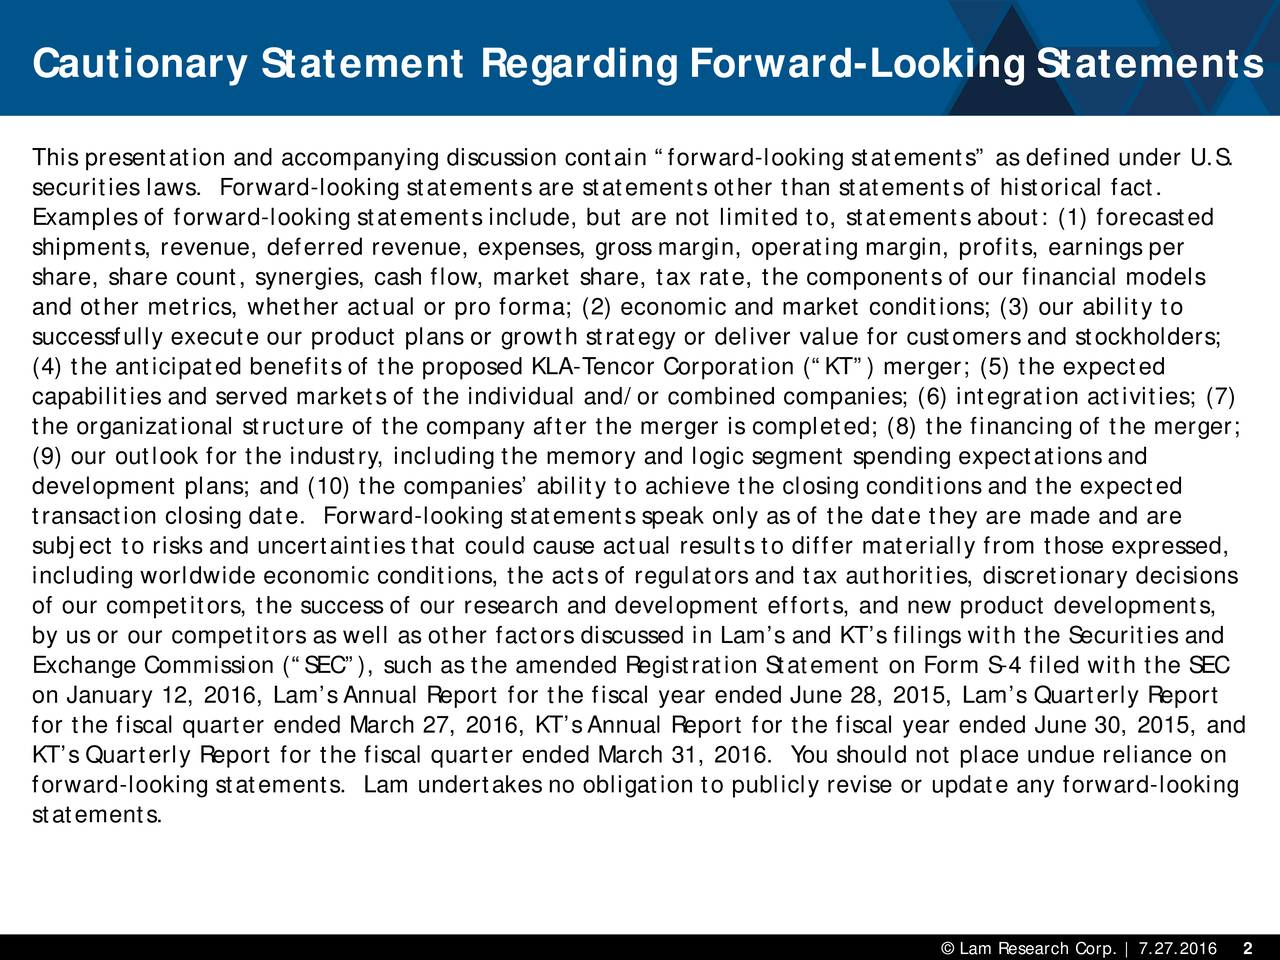 This presentation and accompanying discussion contain forward-looking statements as defined under U.S. securities laws. Forward-looking statements are statements other than statements of historical fact. Examples of forward-looking statements include, but are not limited to, statements about: (1) forecasted shipments, revenue, deferred revenue, expenses, gross margin, operating margin, profits, earnings per share, share count, synergies, cash flow, market share, tax rate, the components of our financial models and other metrics, whether actual or pro forma; (2) economic and market conditions; (3) our ability to successfully execute our product plans or growth strategy or deliver value for customers and stockholders; (4) the anticipated benefits of the proposed KLA-Tencor Corporation (KT) merger; (5) the expected capabilities and served markets of the individual and/or combined companies; (6) integration activities; (7) the organizational structure of the company after the merger is completed; (8) the financing of the merger; (9) our outlook for the industry, including the memory and logic segment spending expectations and development plans; and (10) the companies ability to achieve the closing conditions and the expected transaction closing date. Forward-looking statements speak only as of the date they are made and are subject to risks and uncertainties that could cause actual results to differ materially from those expressed, including worldwide economic conditions, the acts of regulators and tax authorities, discretionary decisions of our competitors, the success of our research and development efforts, and new product developments, by us or our competitors as well as other factors discussed in Lams and KTs filings with the Securities and Exchange Commission (SEC), such as the amended Registration Statement on Form S-4 filed with the SEC on January 12, 2016, Lams Annual Report for the fiscal year ended June 28, 2015, Lams Quarterly Report for the fiscal quarter ended March 27, 2016, KTs Annual Report for the fiscal year ended June 30, 2015, and KTs Quarterly Report for the fiscal quarter ended March 31, 2016. You should not place undue reliance on forward-looking statements. Lam undertakes no obligation to publicly revise or update any forward -looking statements.